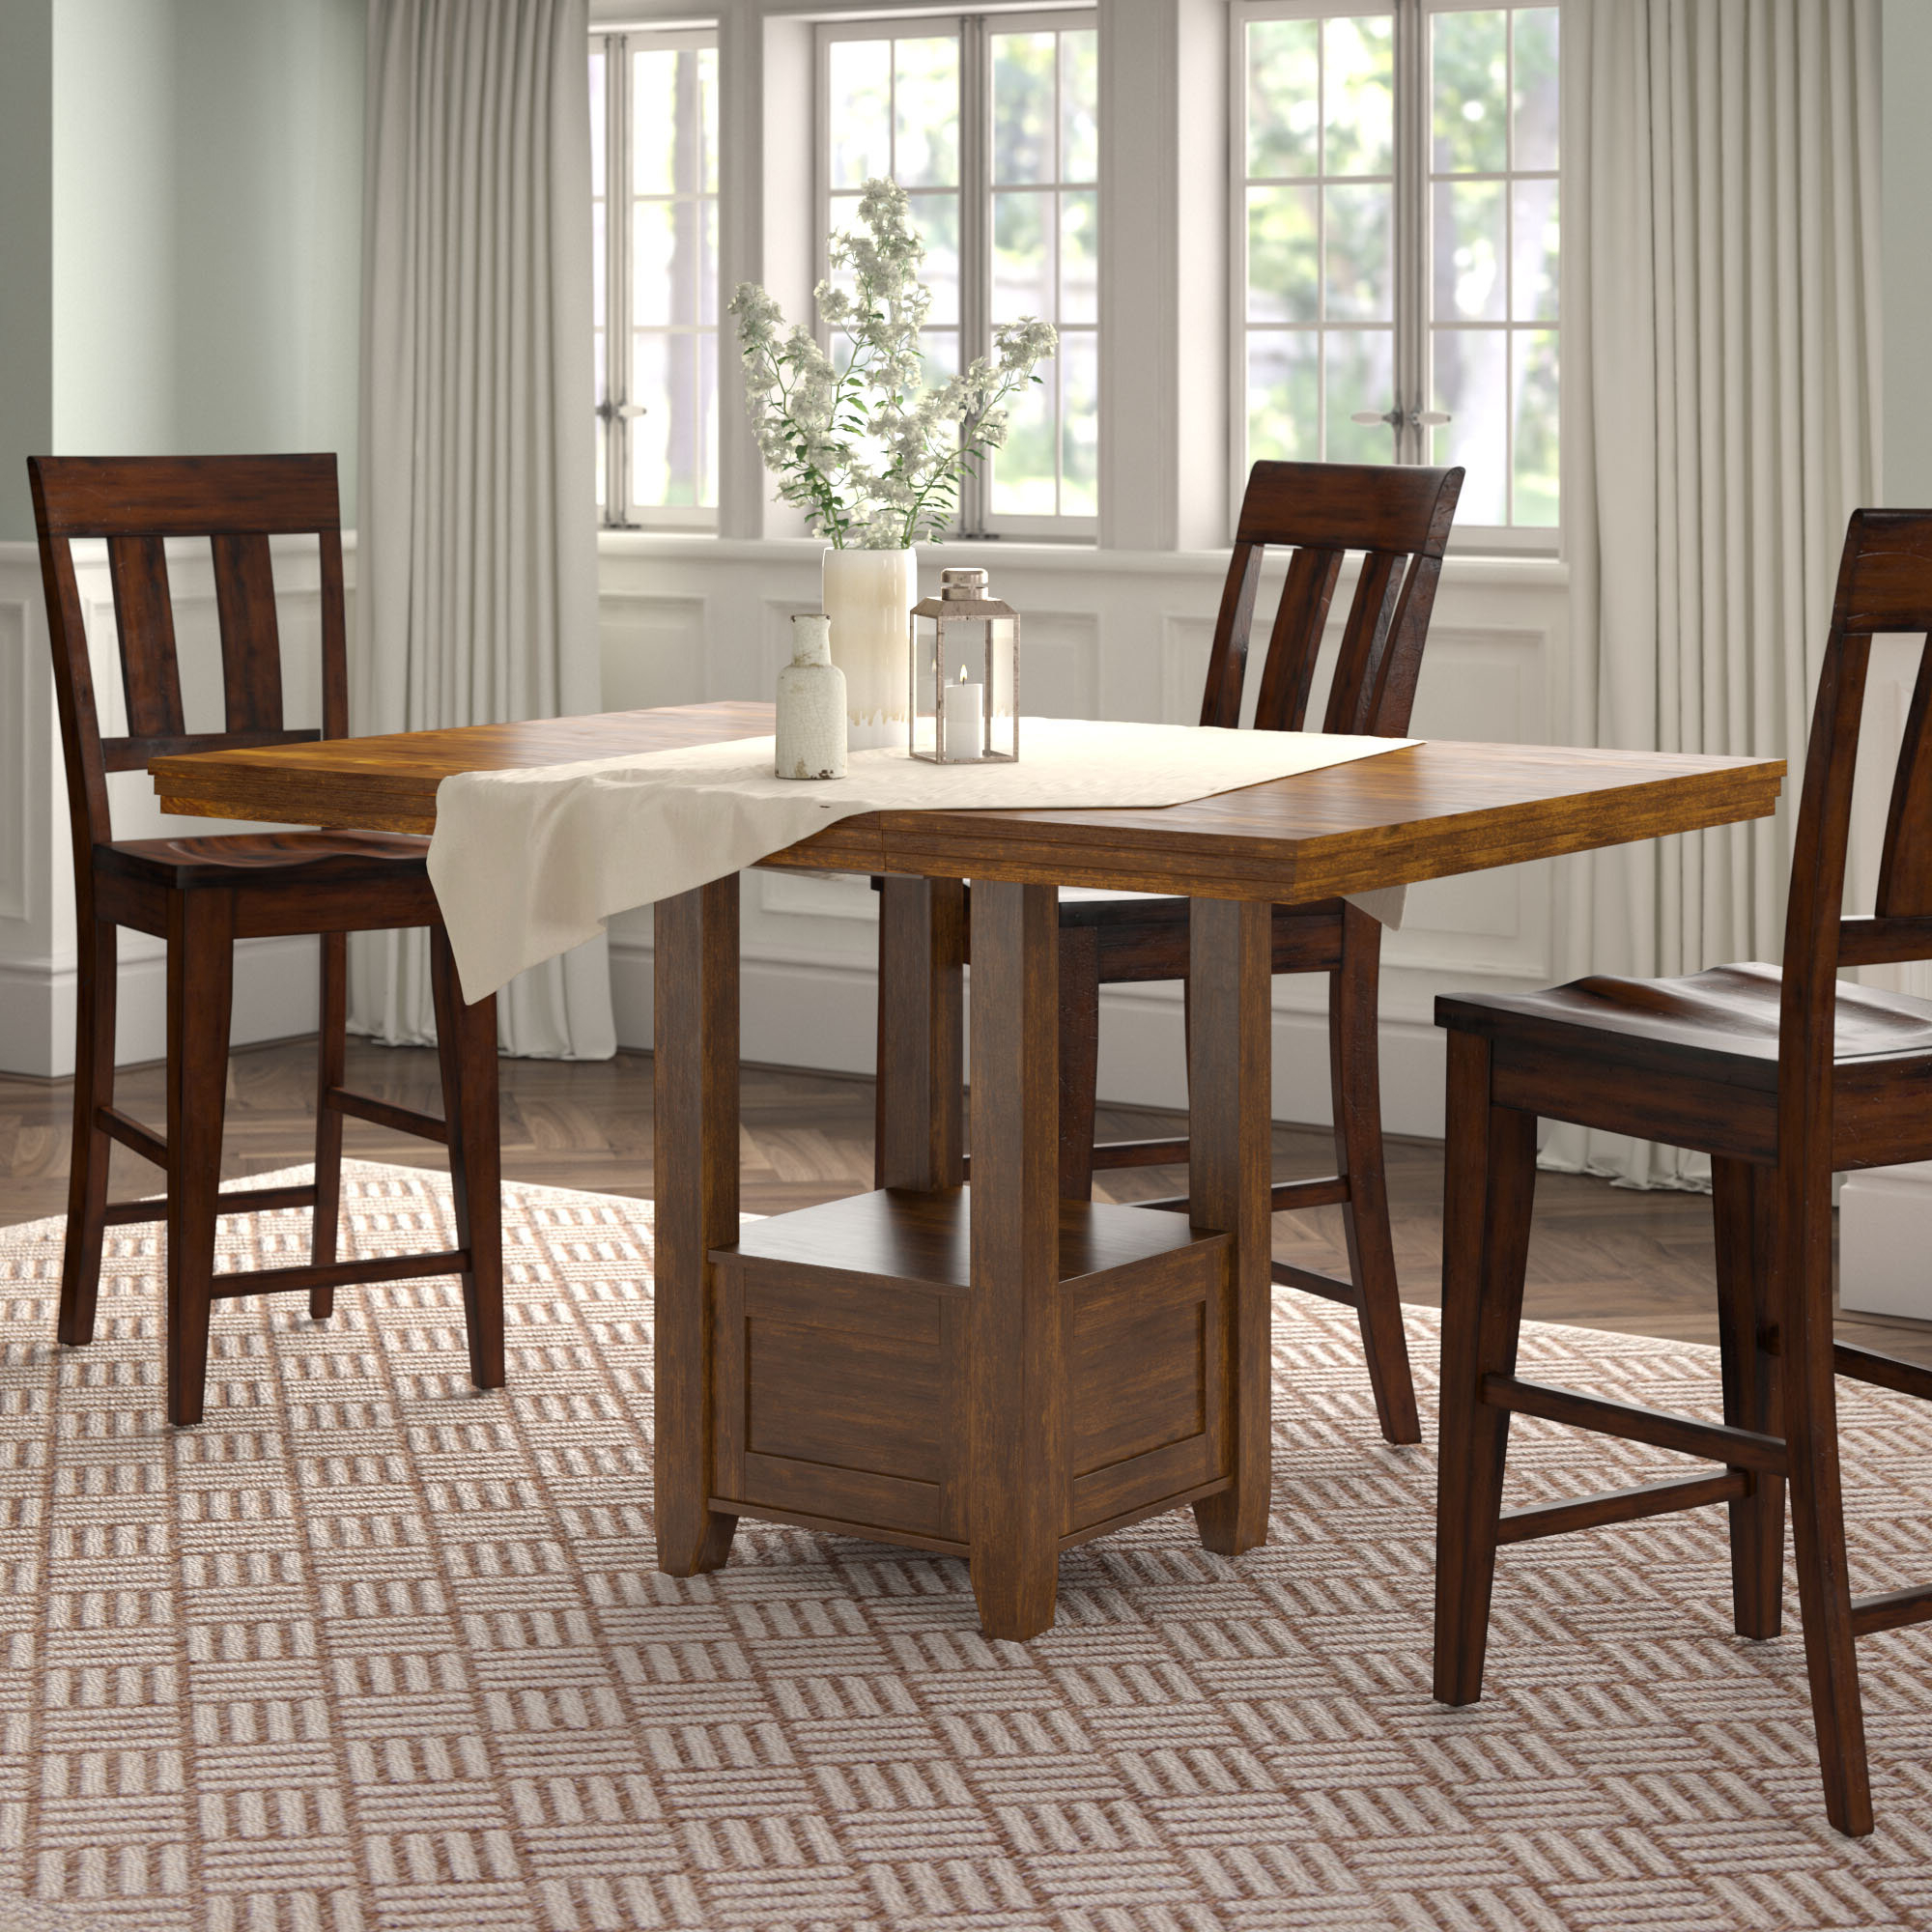 Transitional 4 Seating Square Casual Dining Tables Intended For Well Liked Andover Mills Rebecca Counter Height Extendable Dining Table (View 20 of 25)